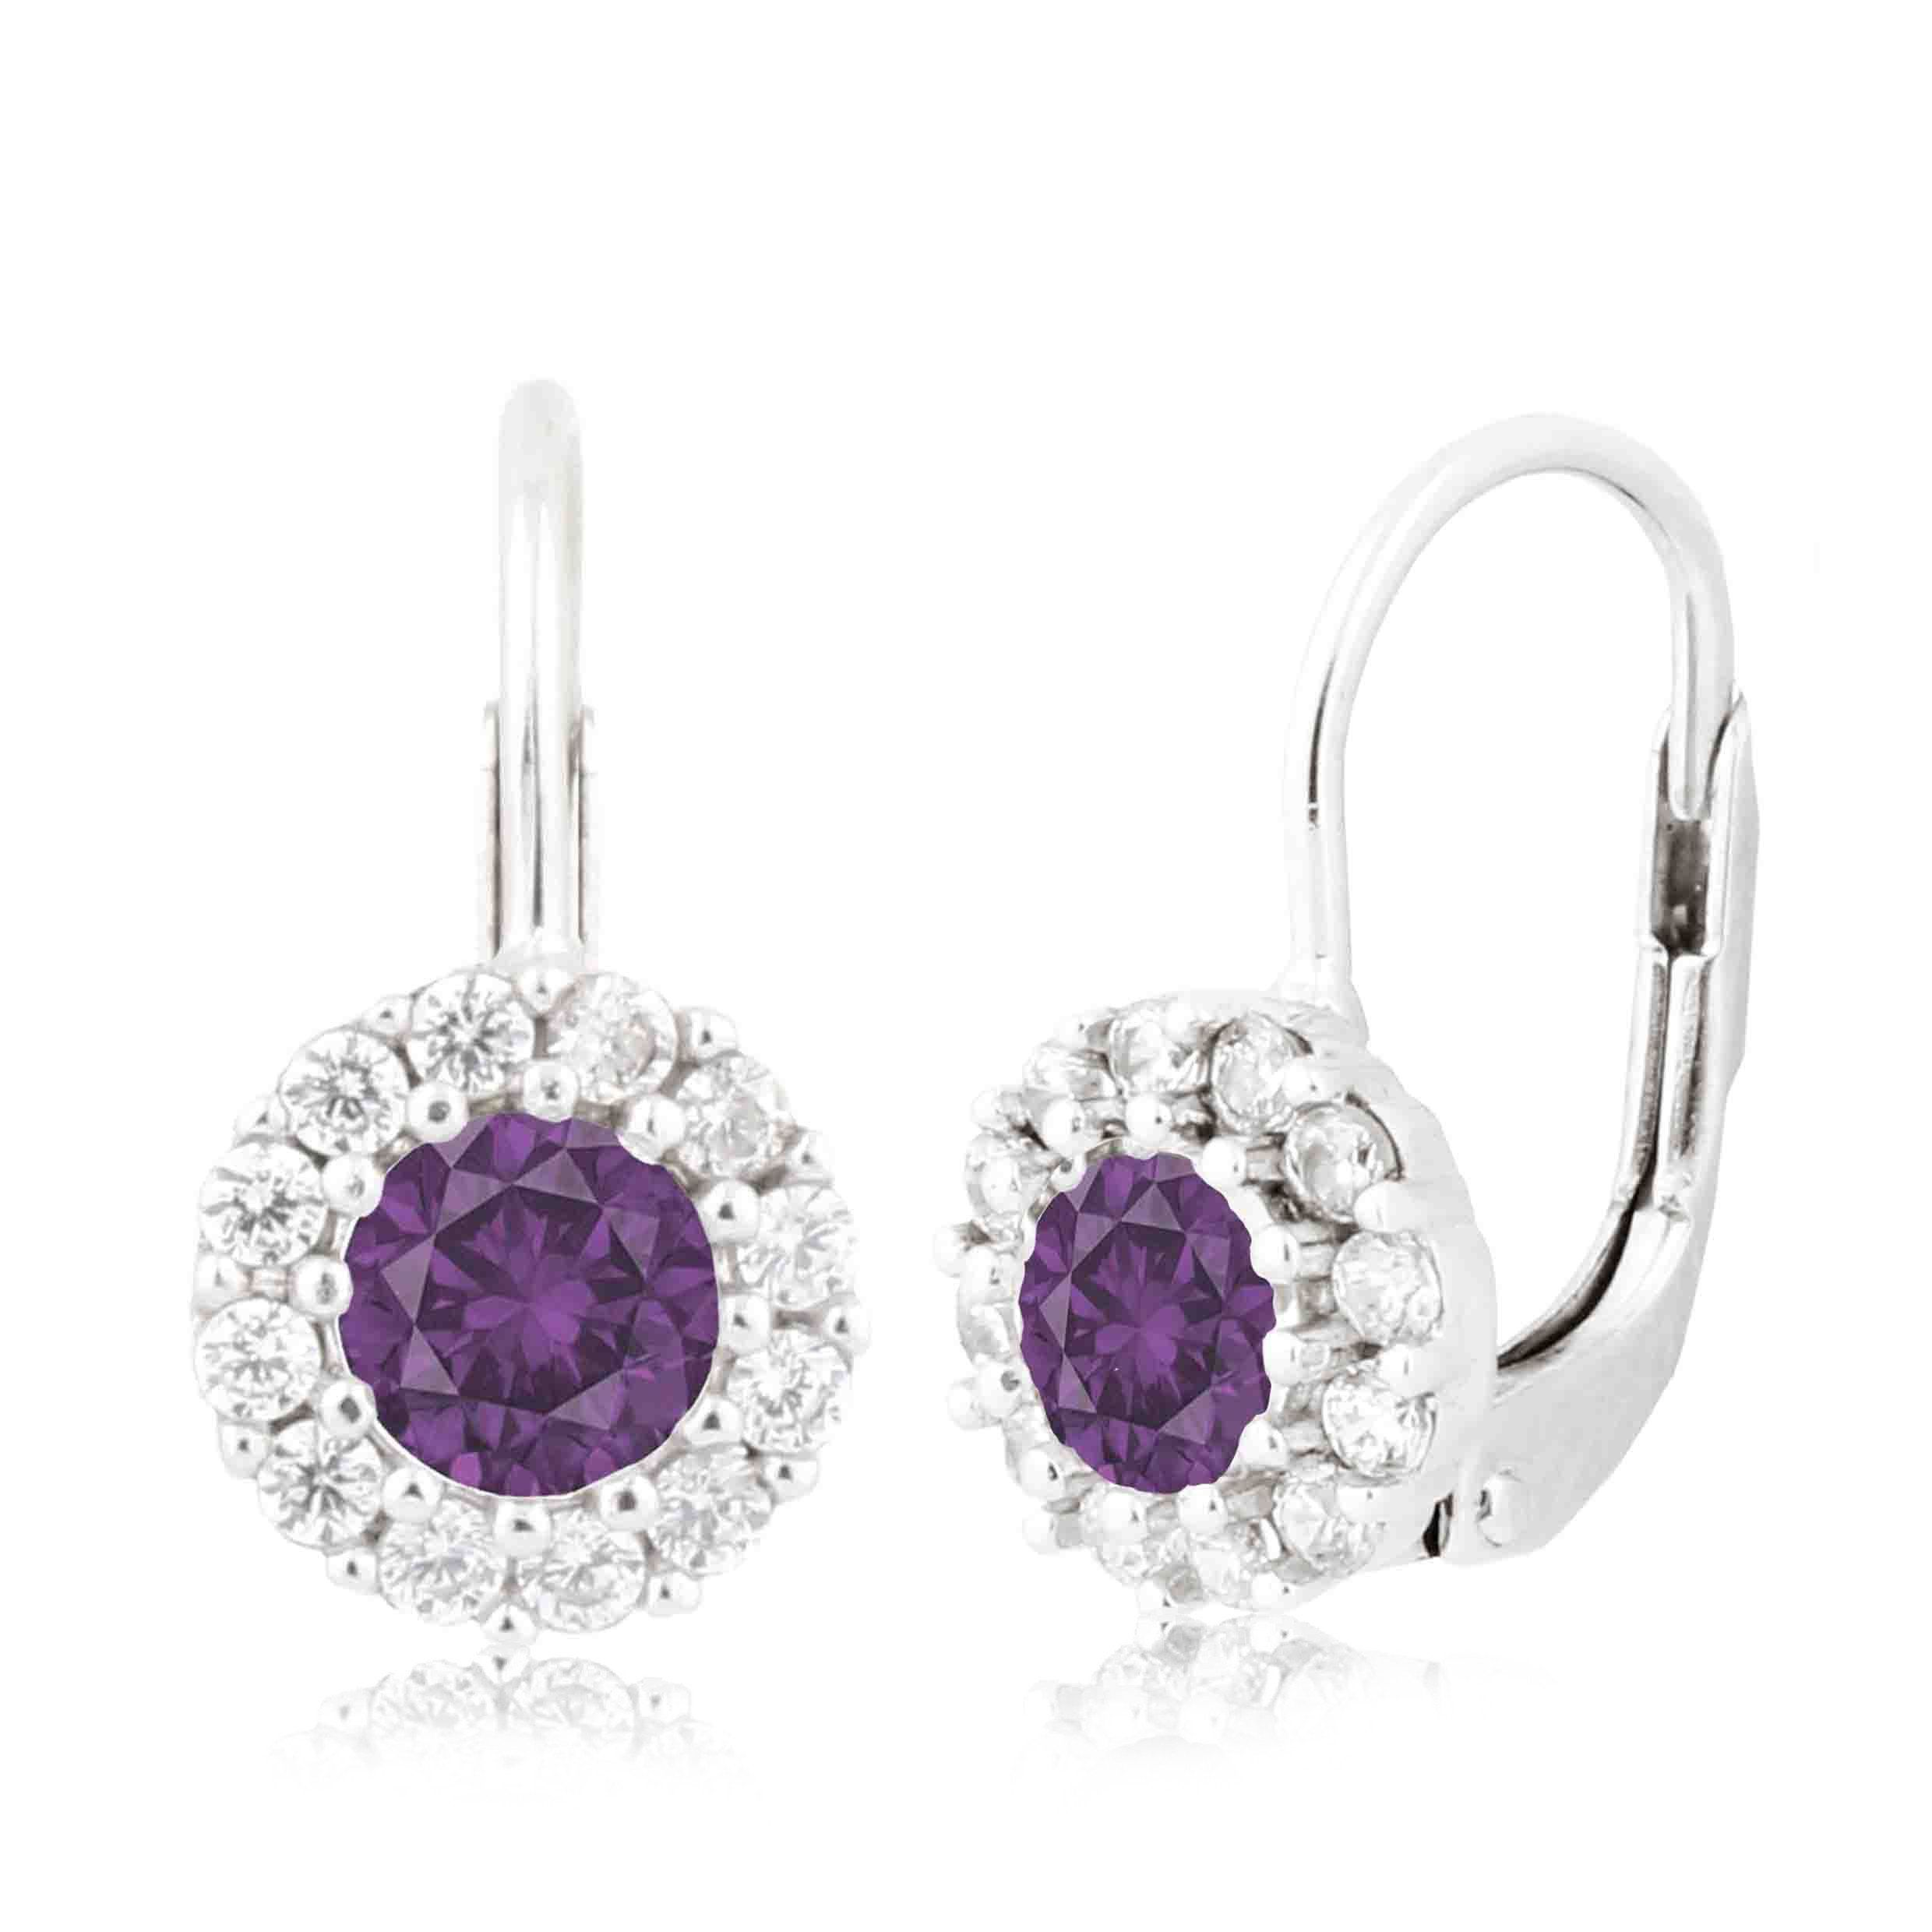 tfrc mar silver birthstone march products earrings lmb